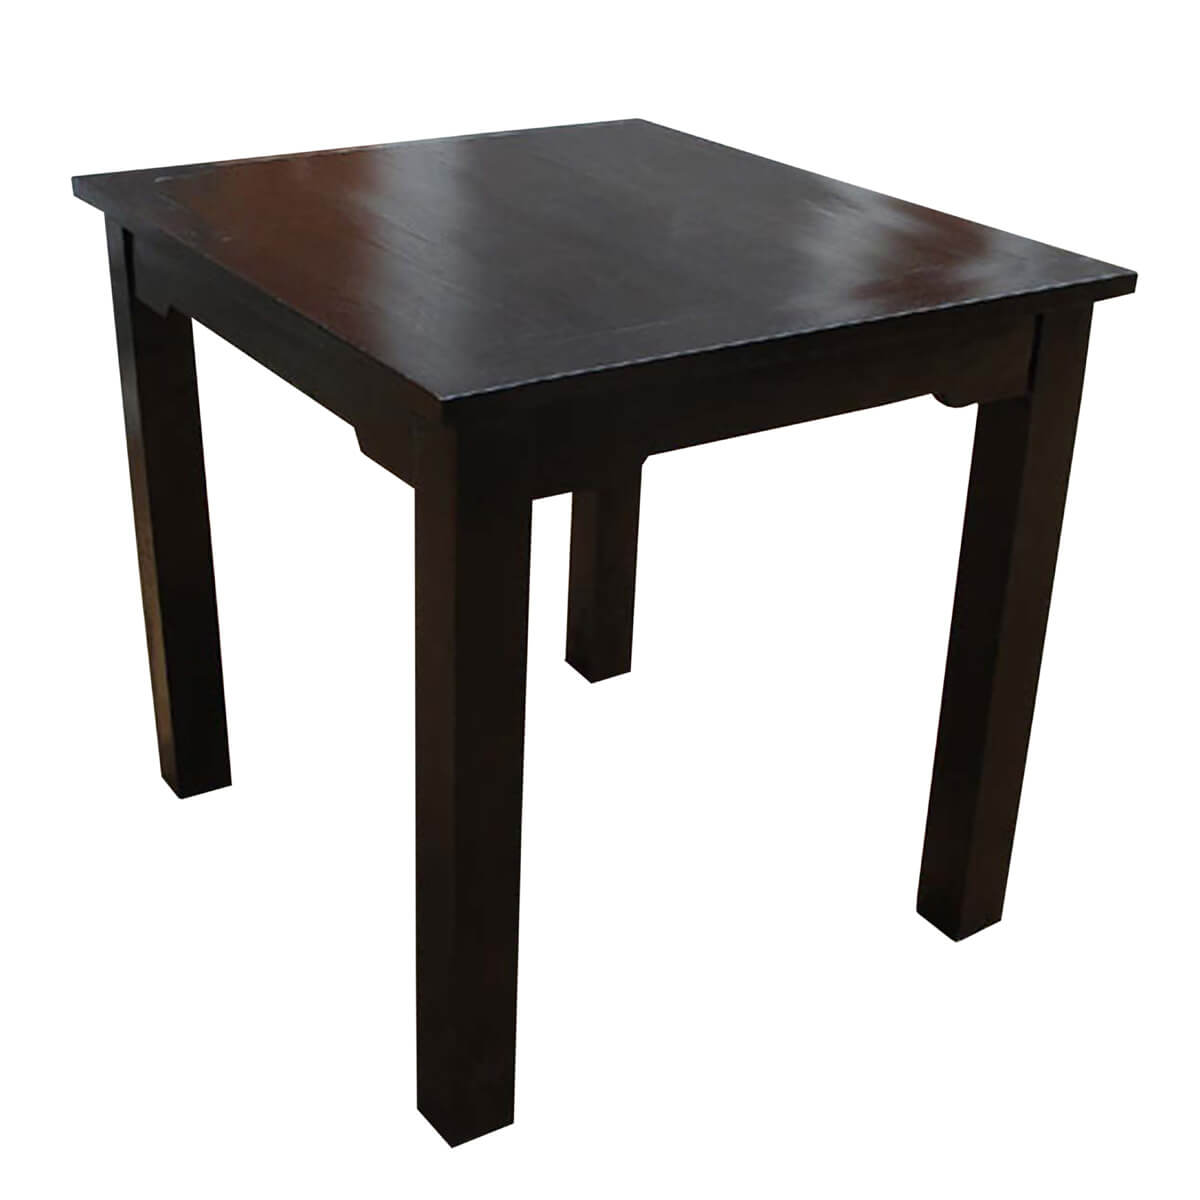 Casual square dining table w ebony finish made of solid wood for Solid wood dining table